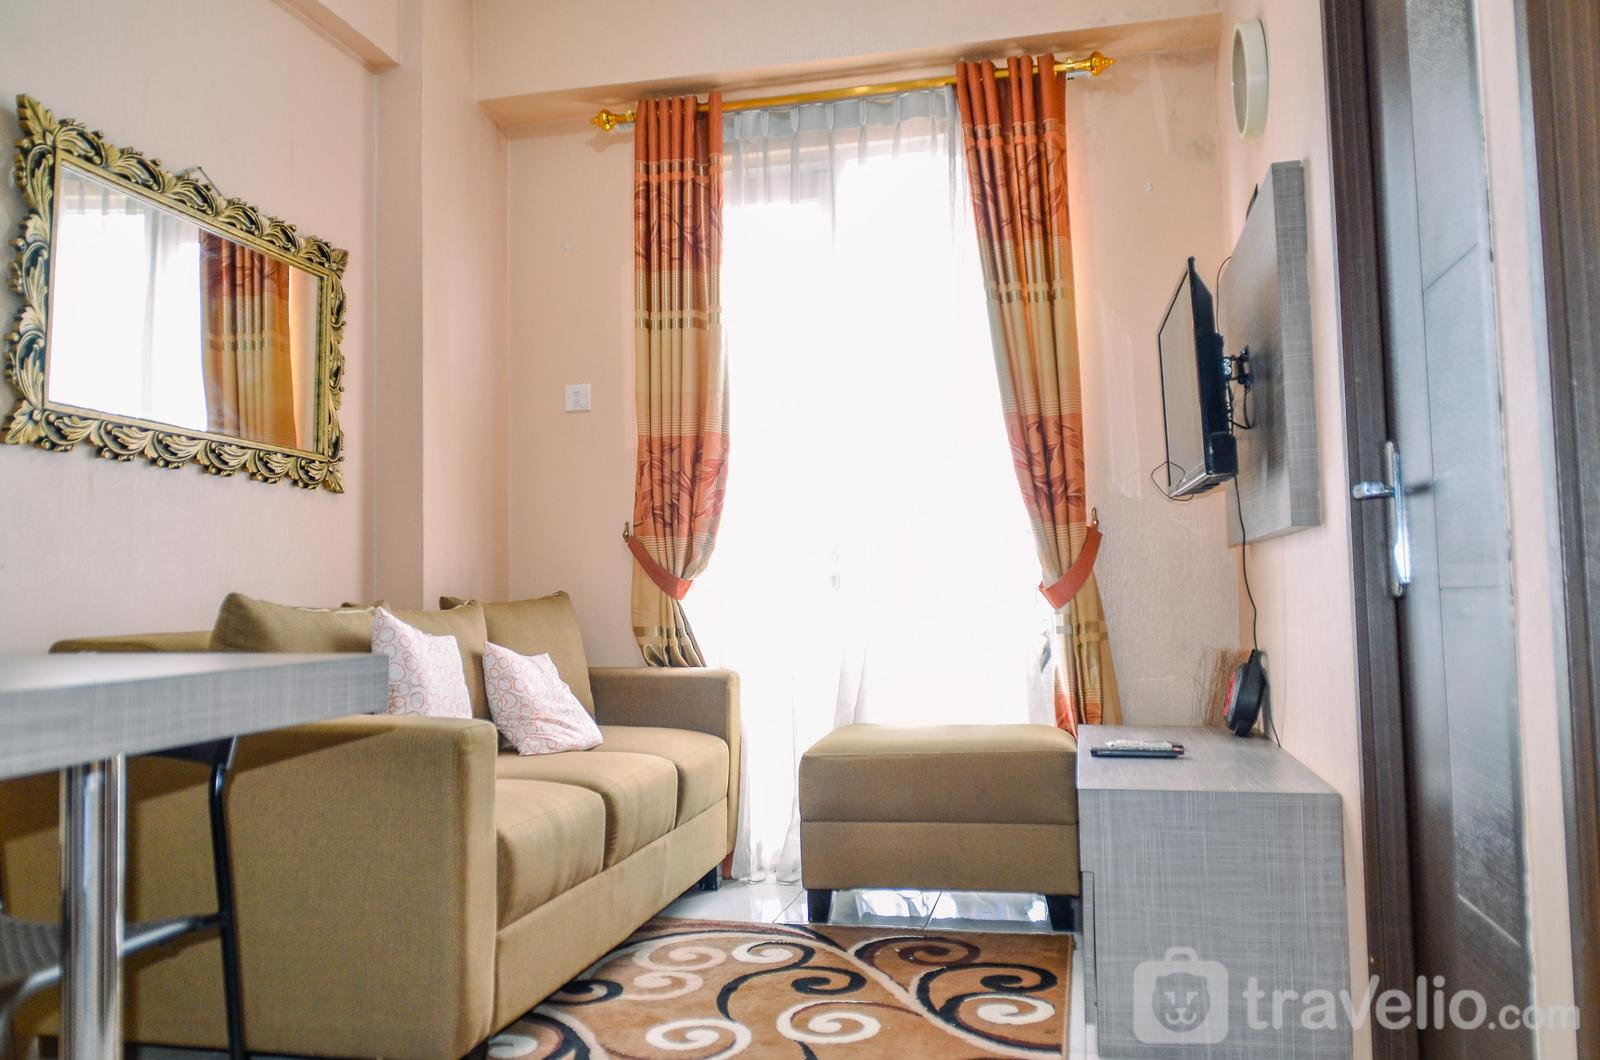 Apartemen City Light - Cozy and Simple 2BR at City Light Apartment By Travelio